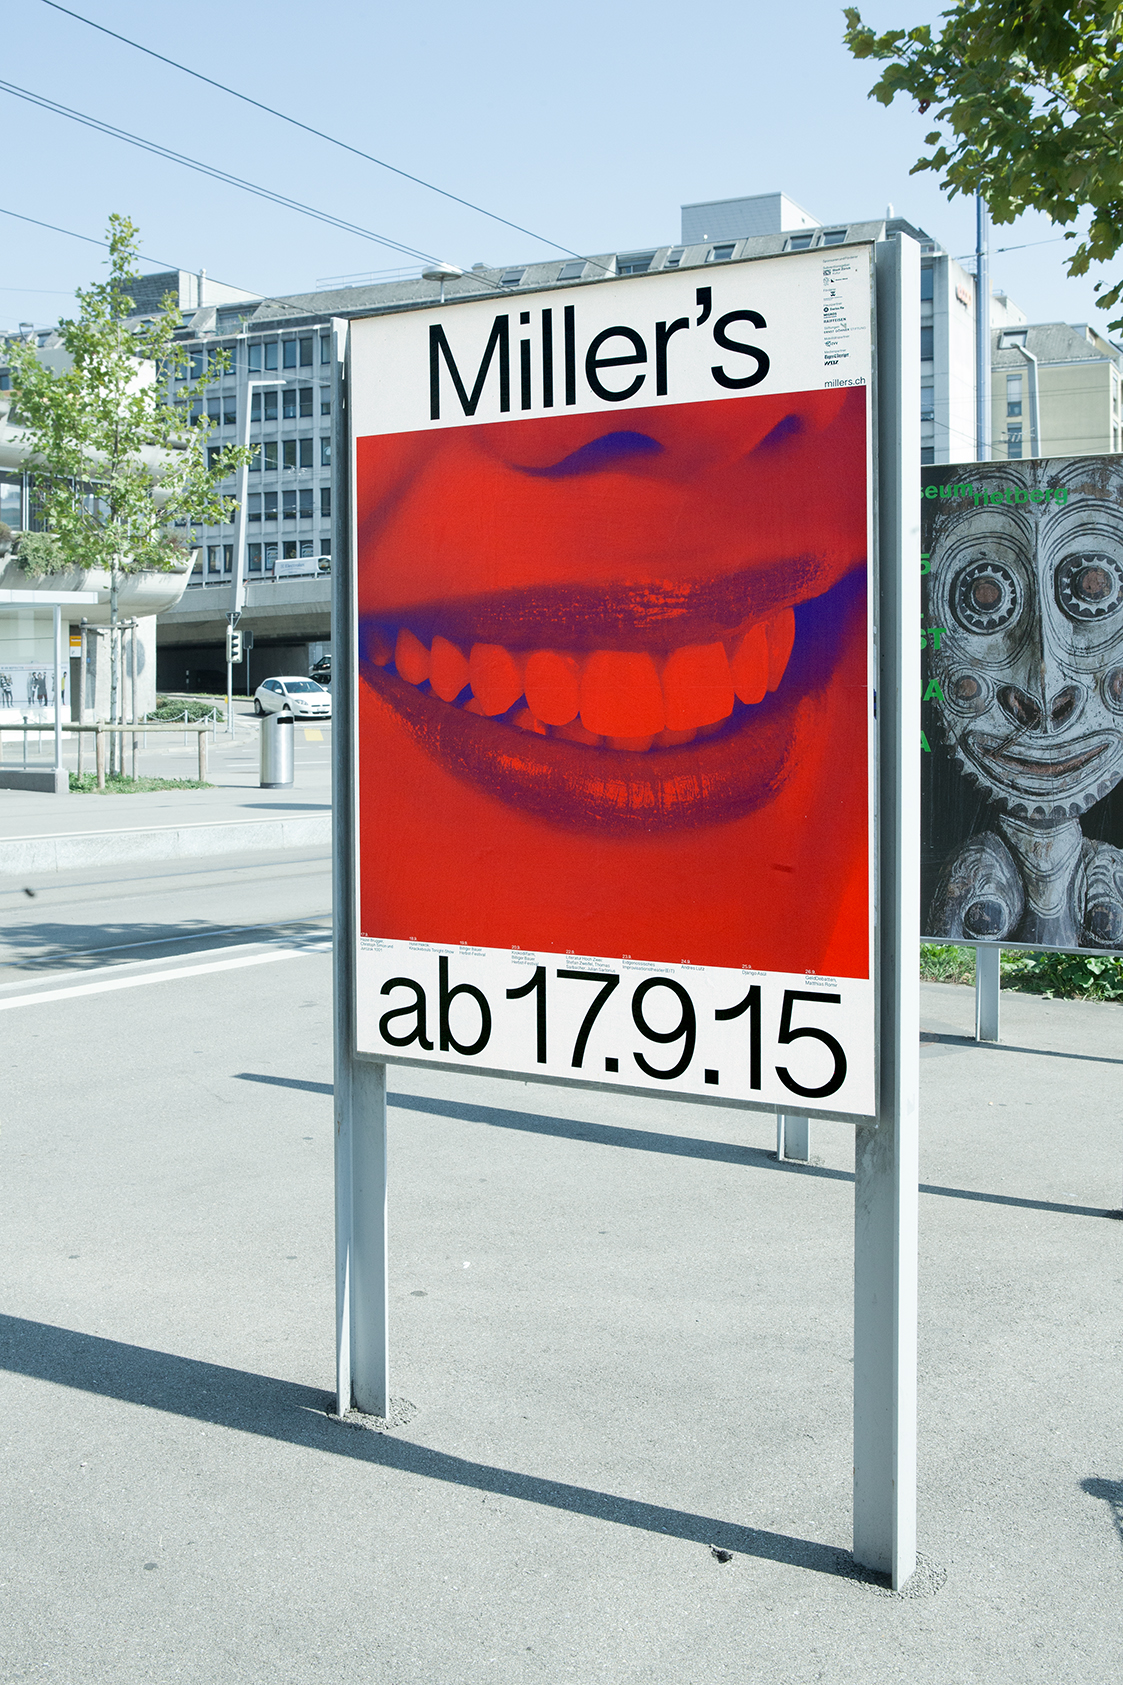 Miller's, Seasonal Opening 15/16, Image campaigns